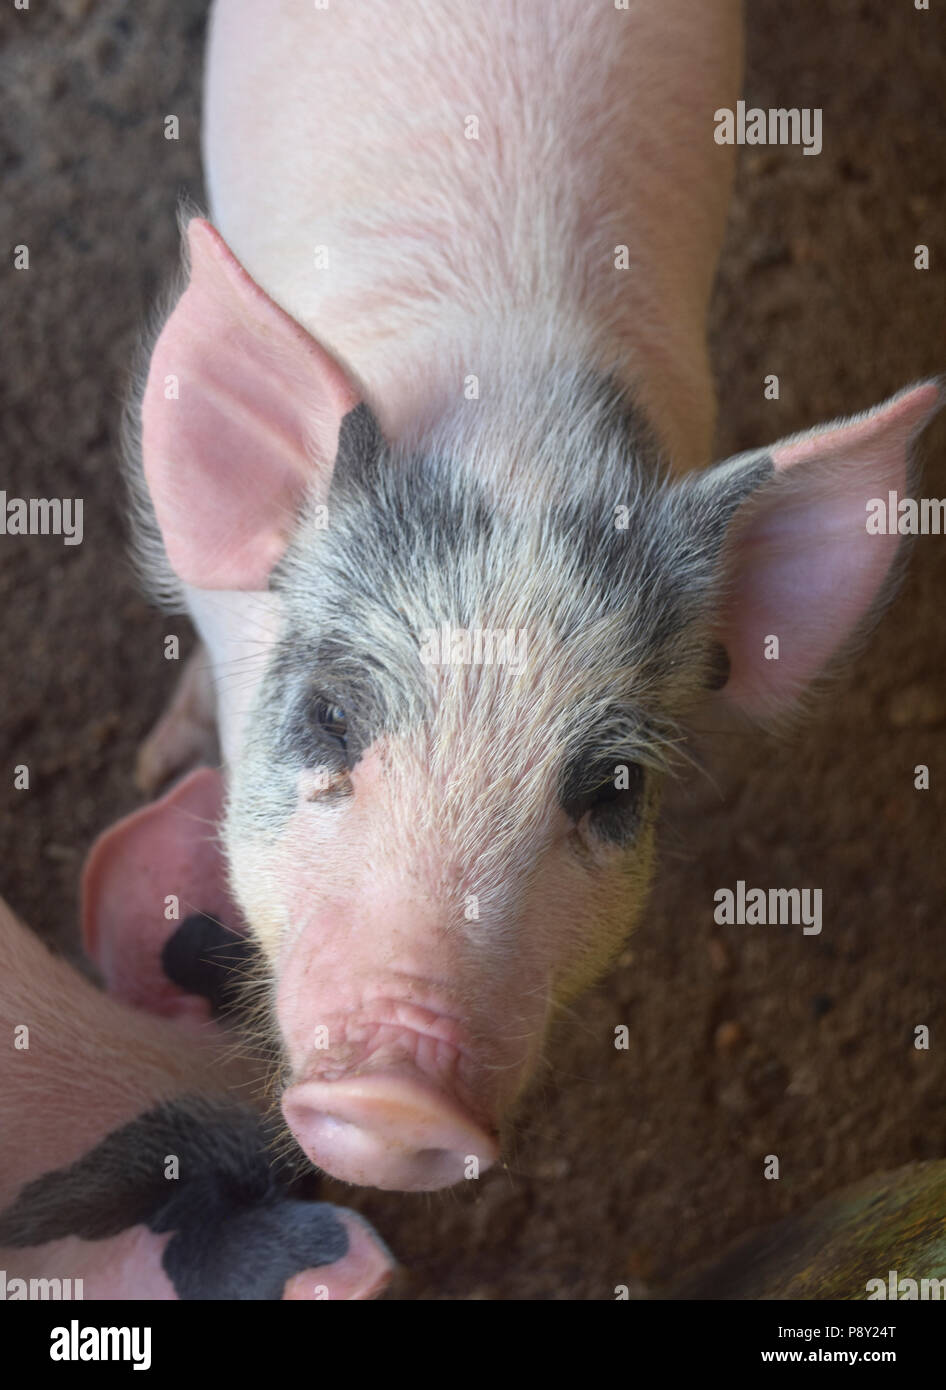 Really adorable pink face on a pig. - Stock Image